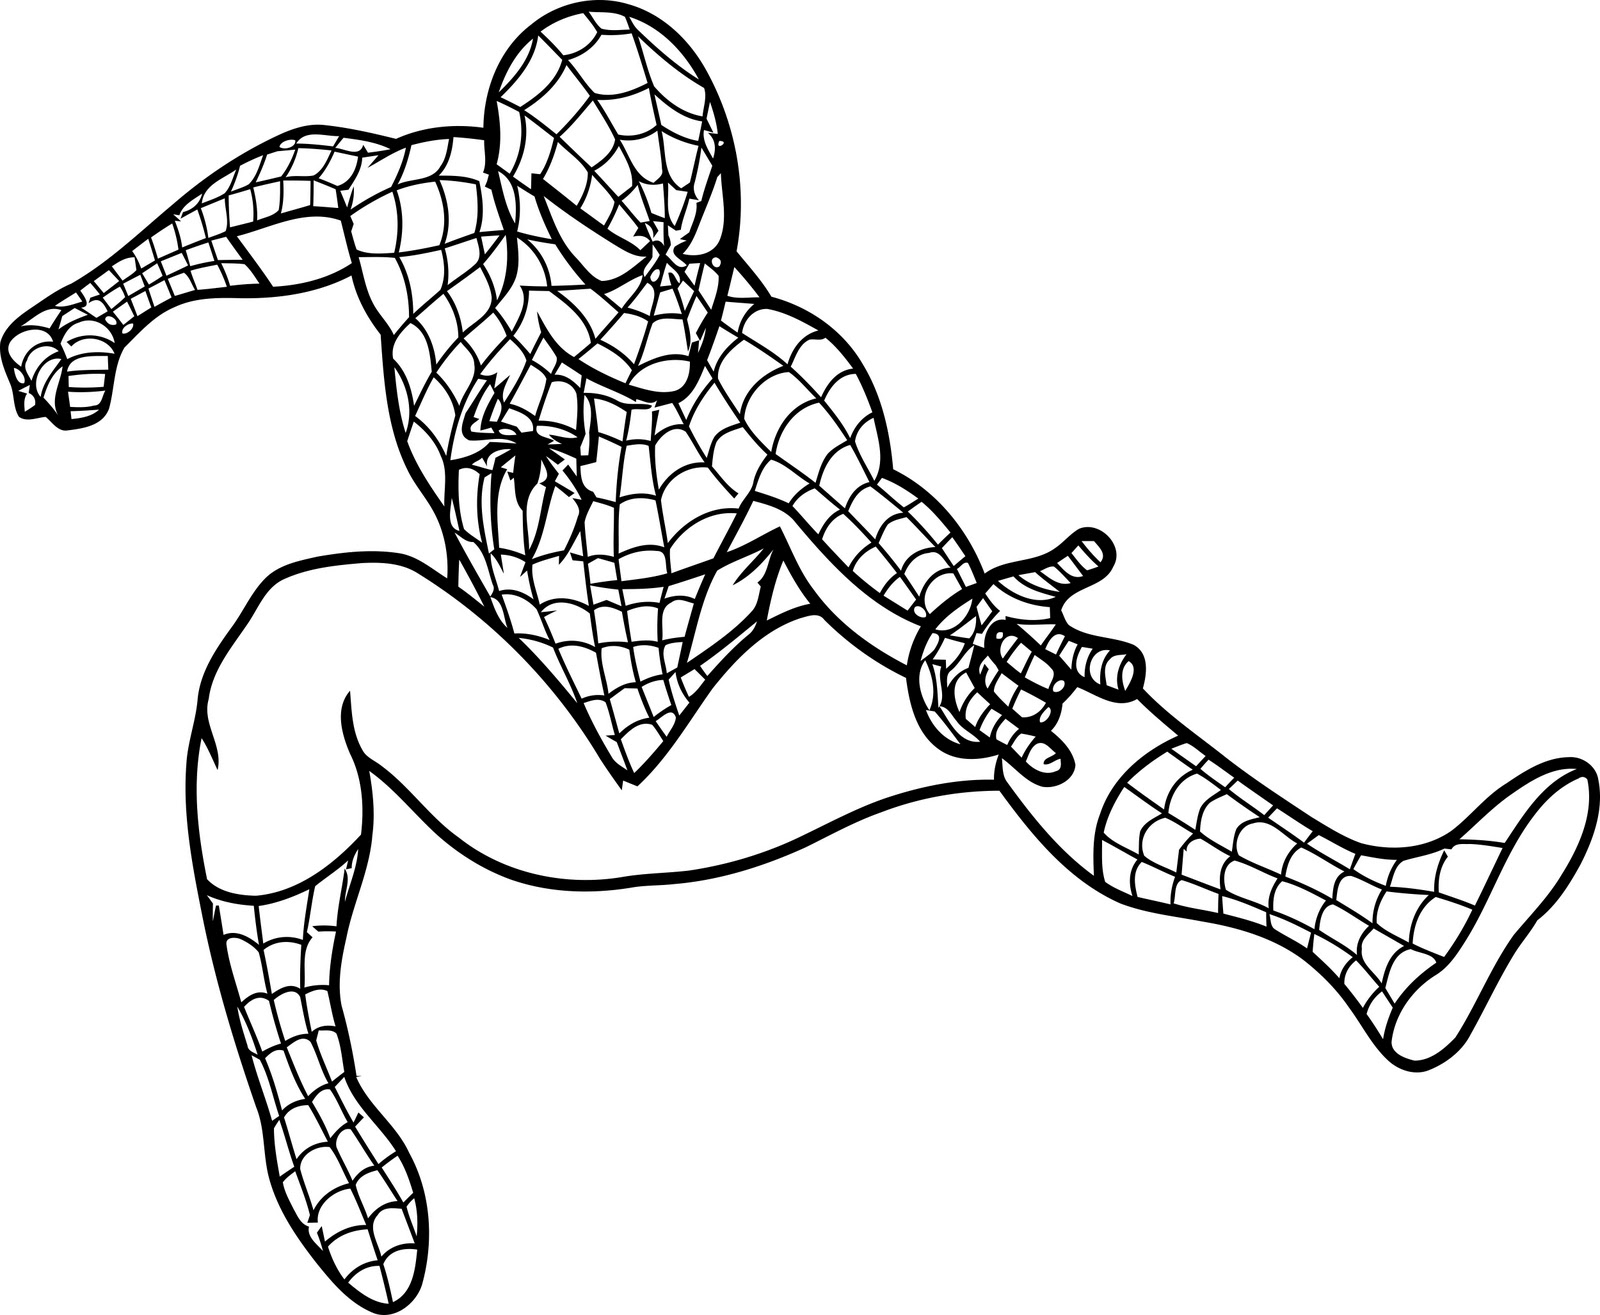 Free Spiderman Clipart Black And White, Download Free Clip.